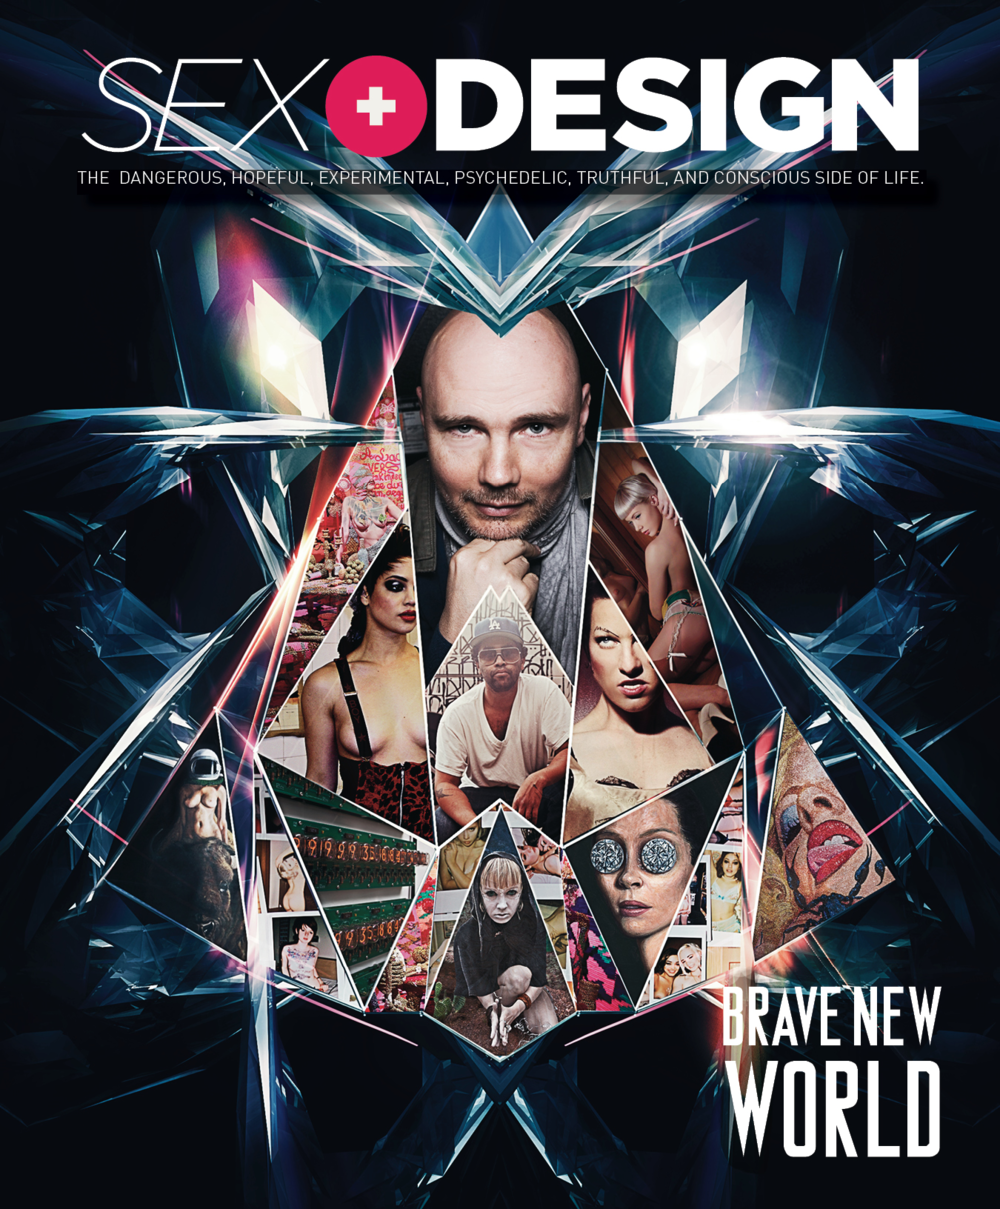 Sex And Design Magazine Brave New World